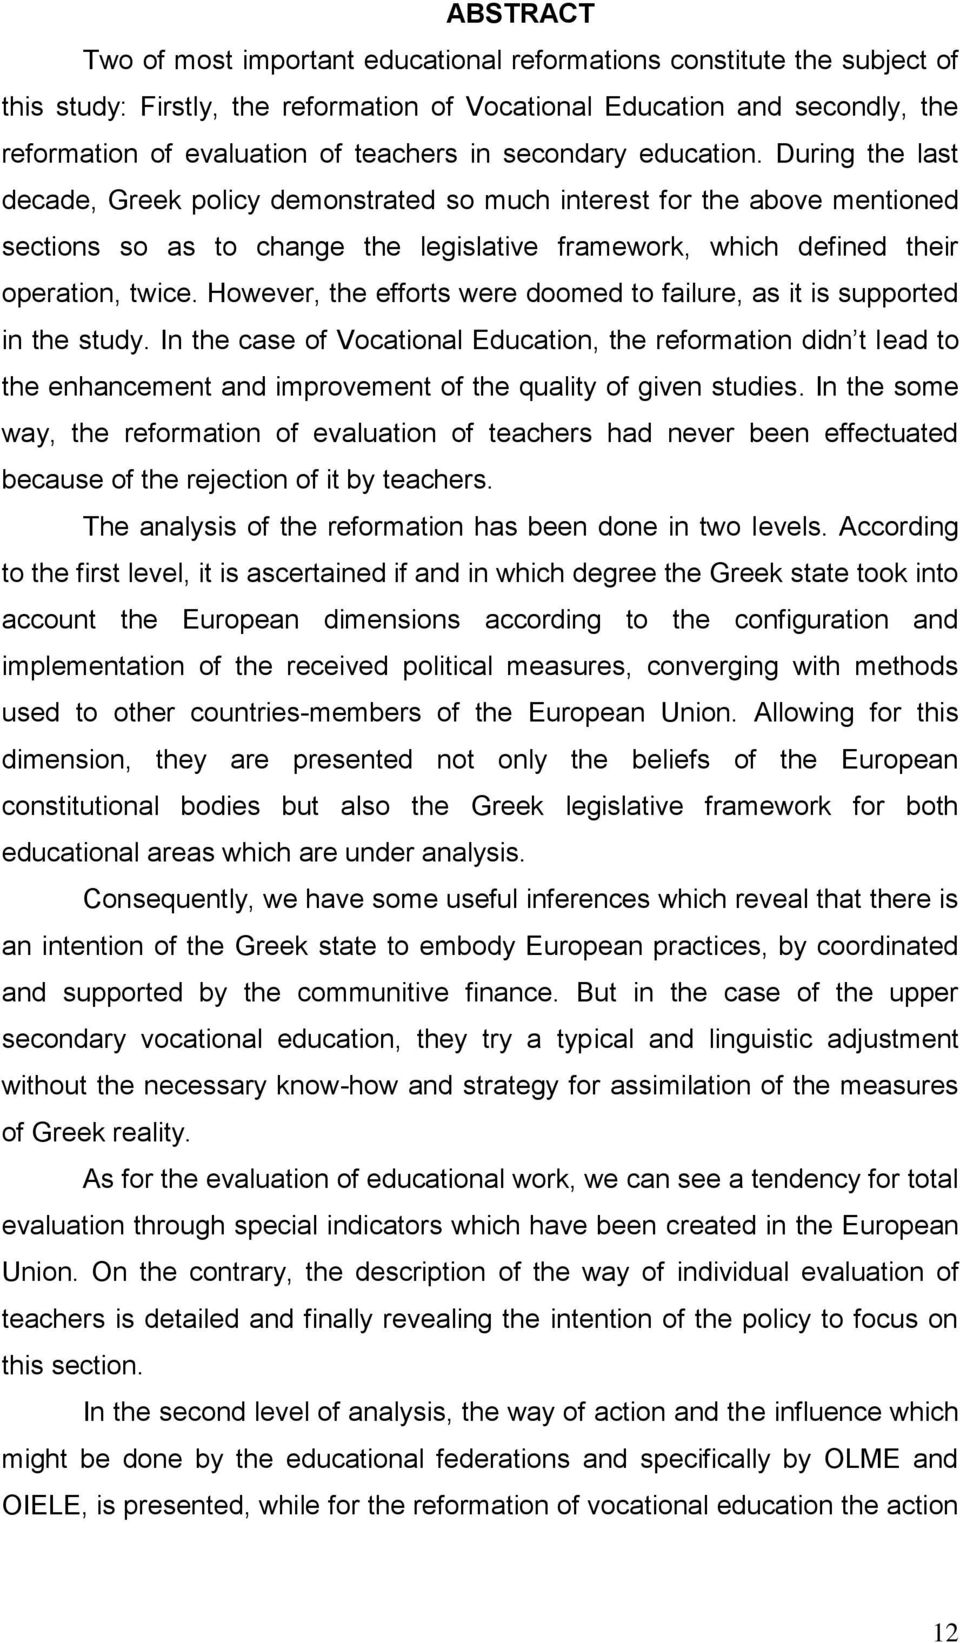 During the last decade, Greek policy demonstrated so much interest for the above mentioned sections so as to change the legislative framework, which defined their operation, twice.